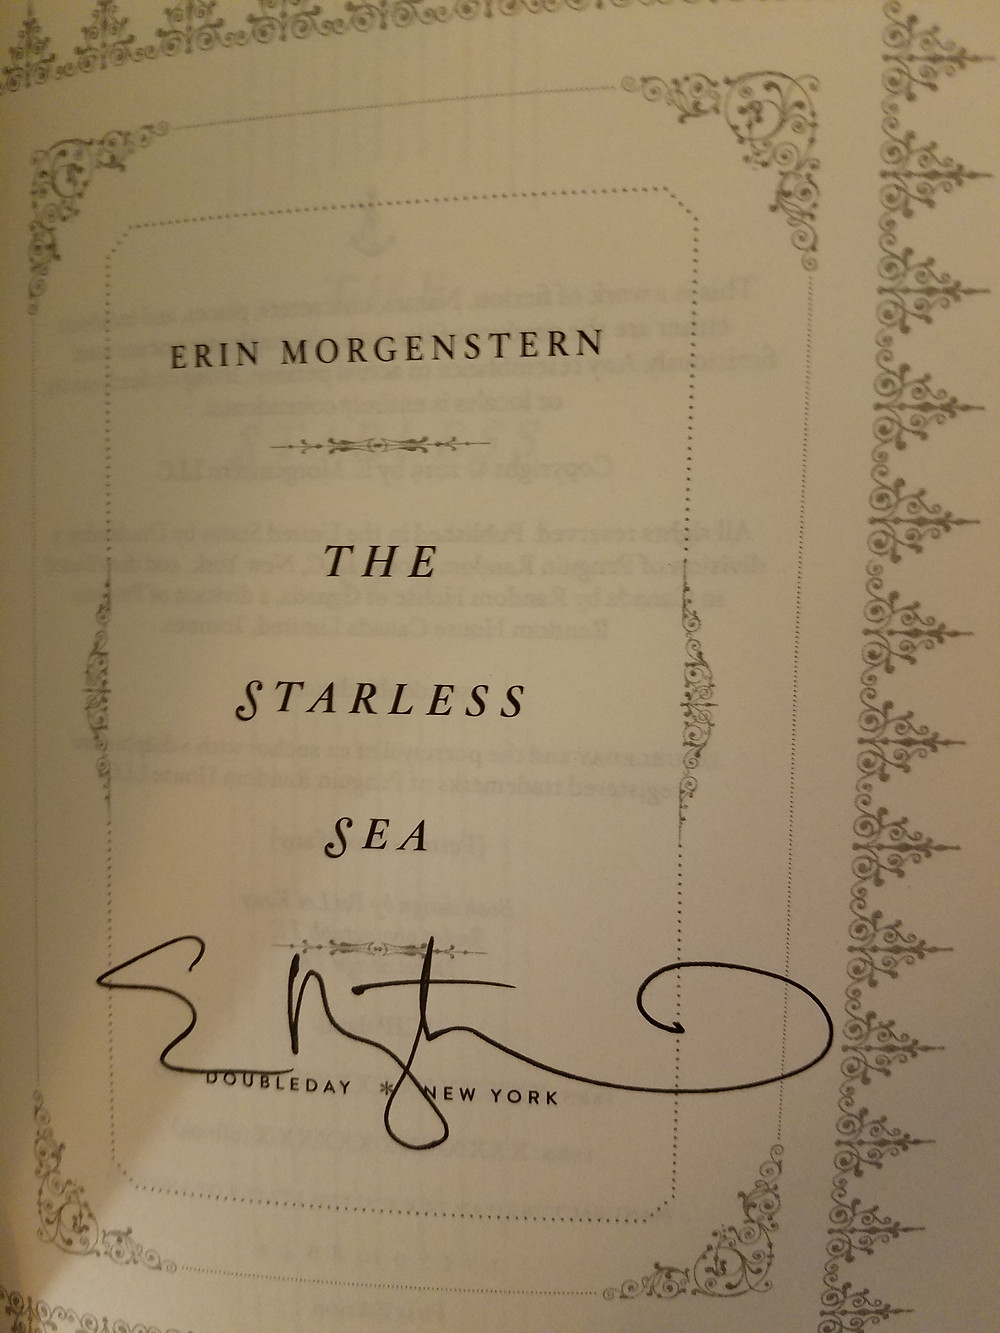 Signed copy of The Starless Sea by Erin Morgenstern